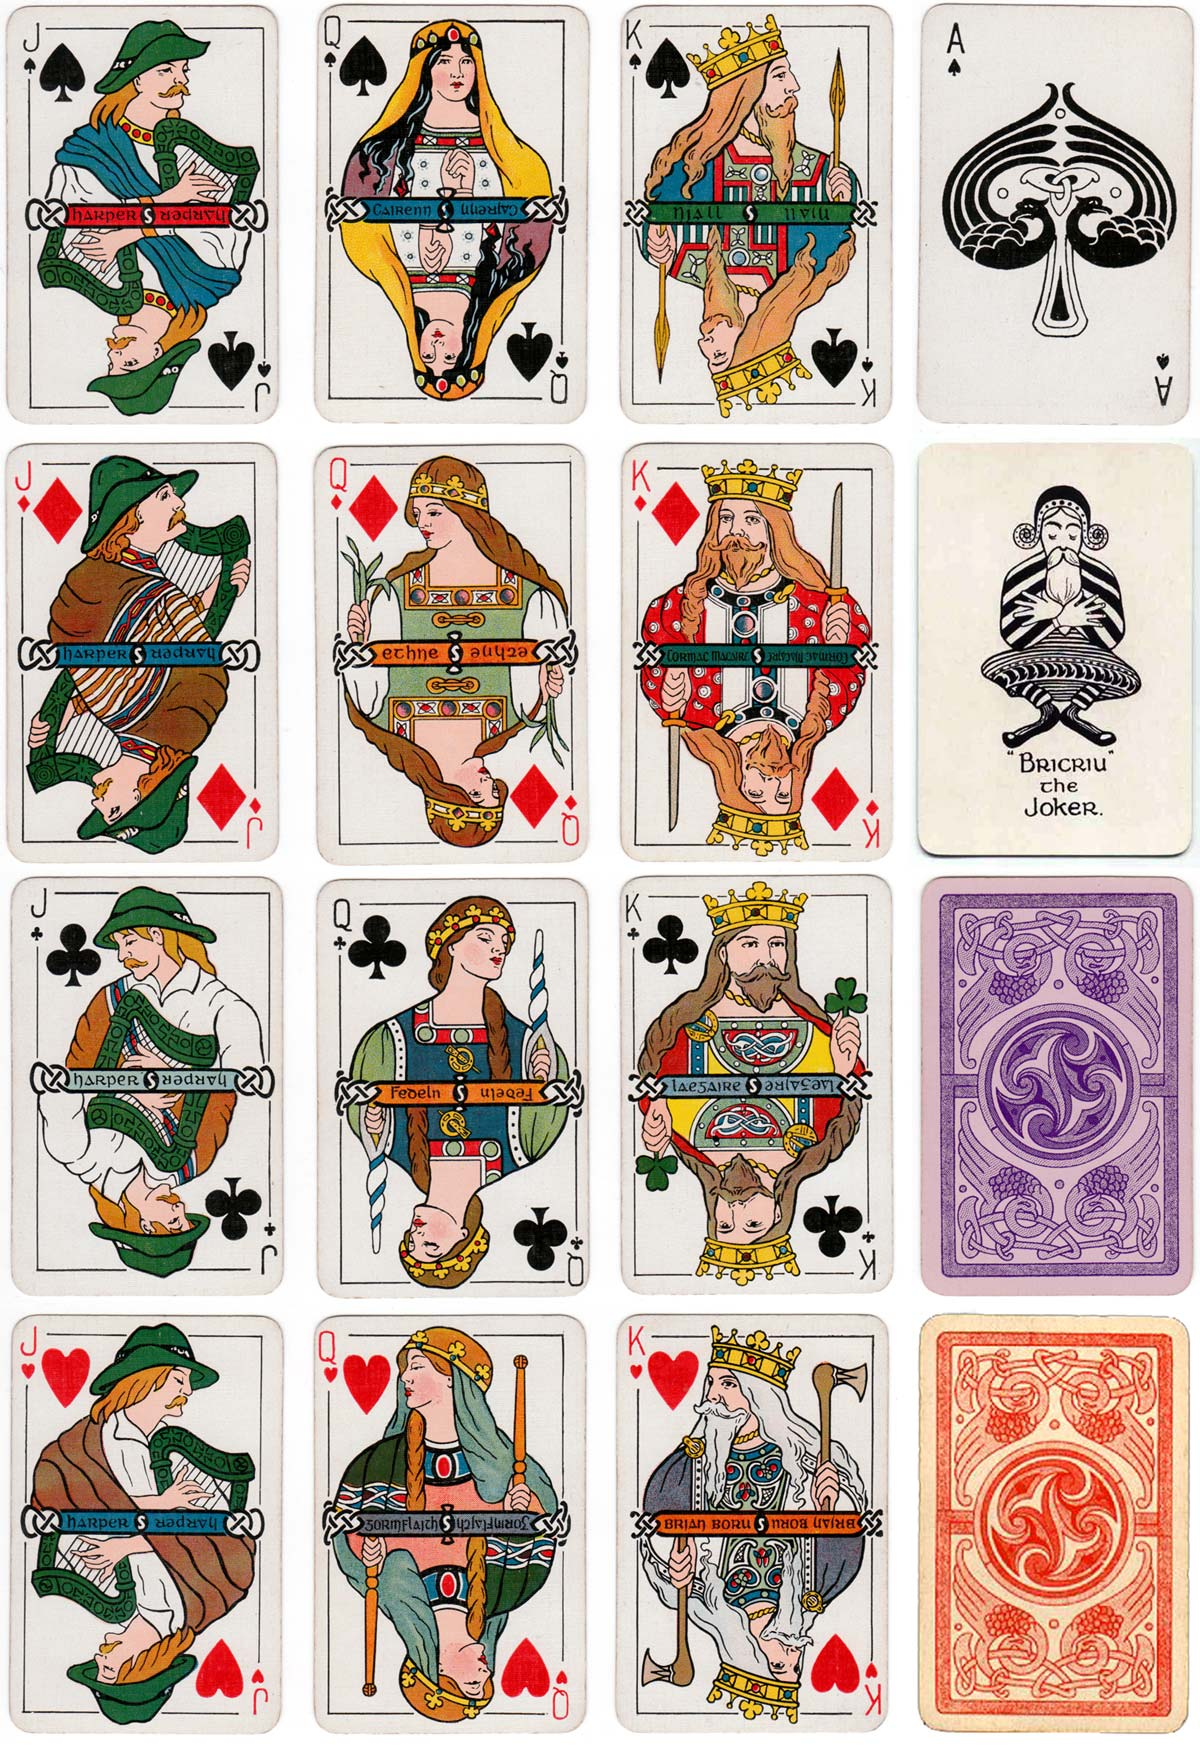 Irish Historic Playing Cards published by W & G Baird Ltd